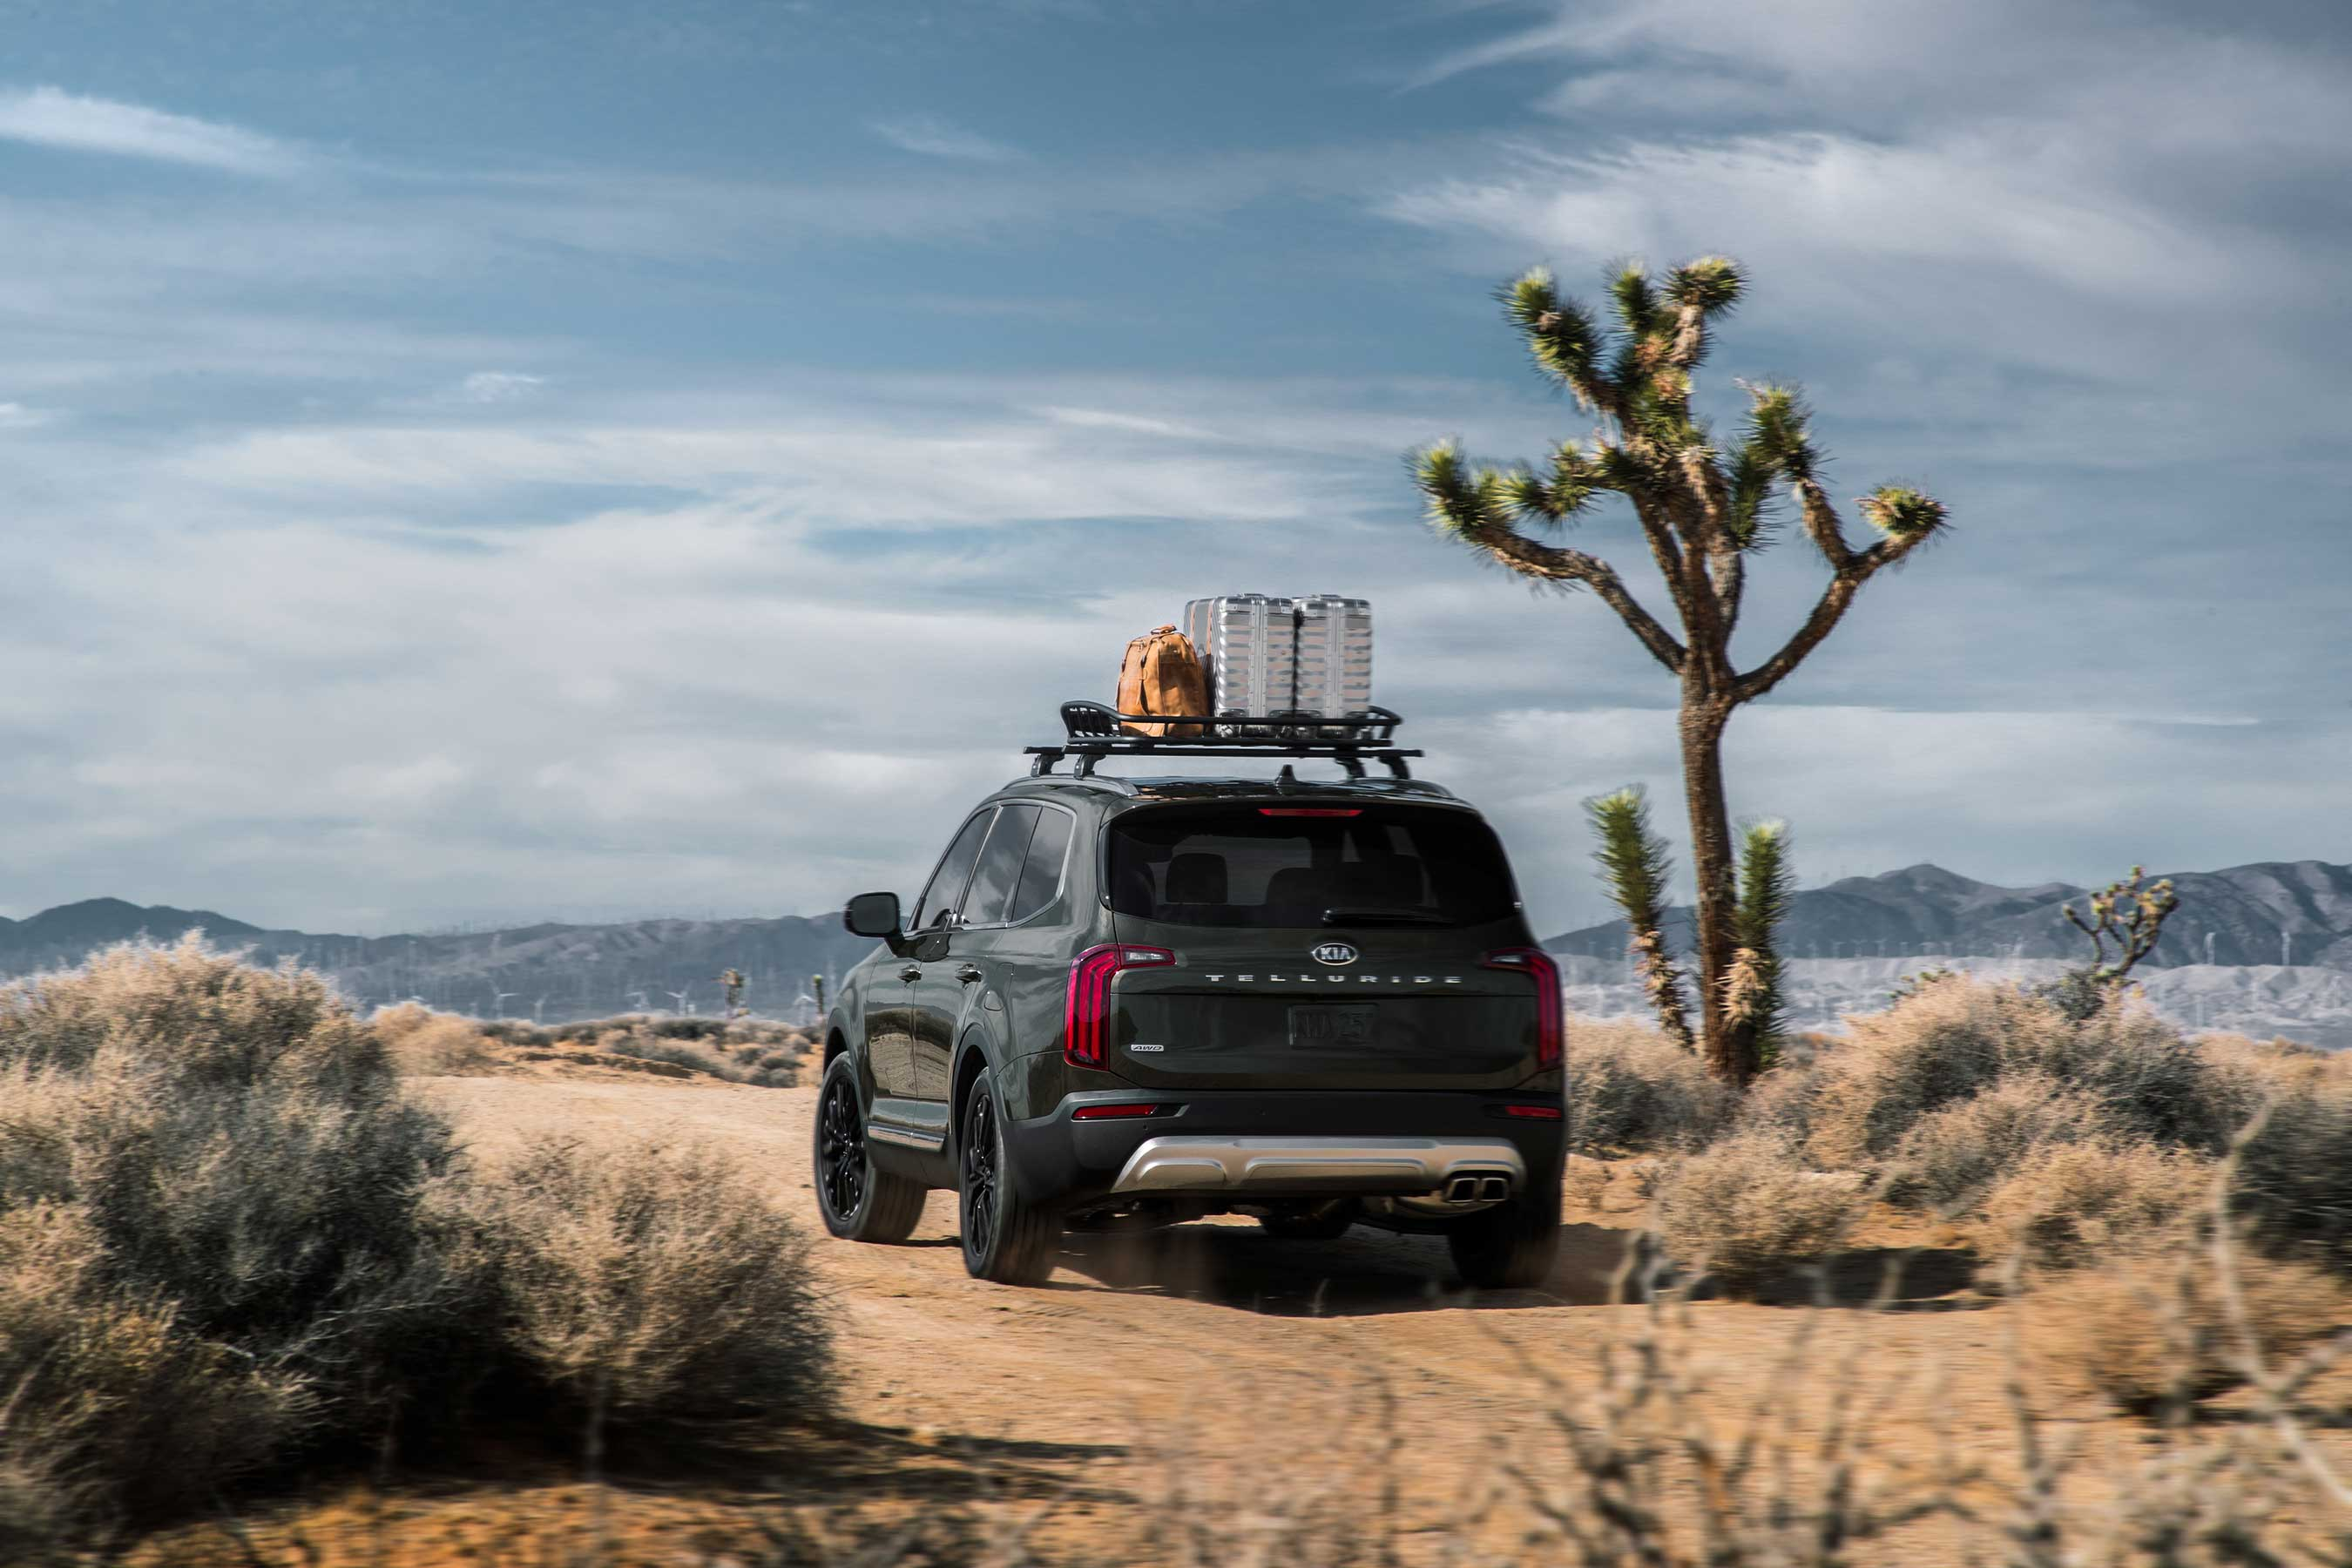 Big, bold and boxy, the all-new 2020 Kia Telluride is made for adventures.